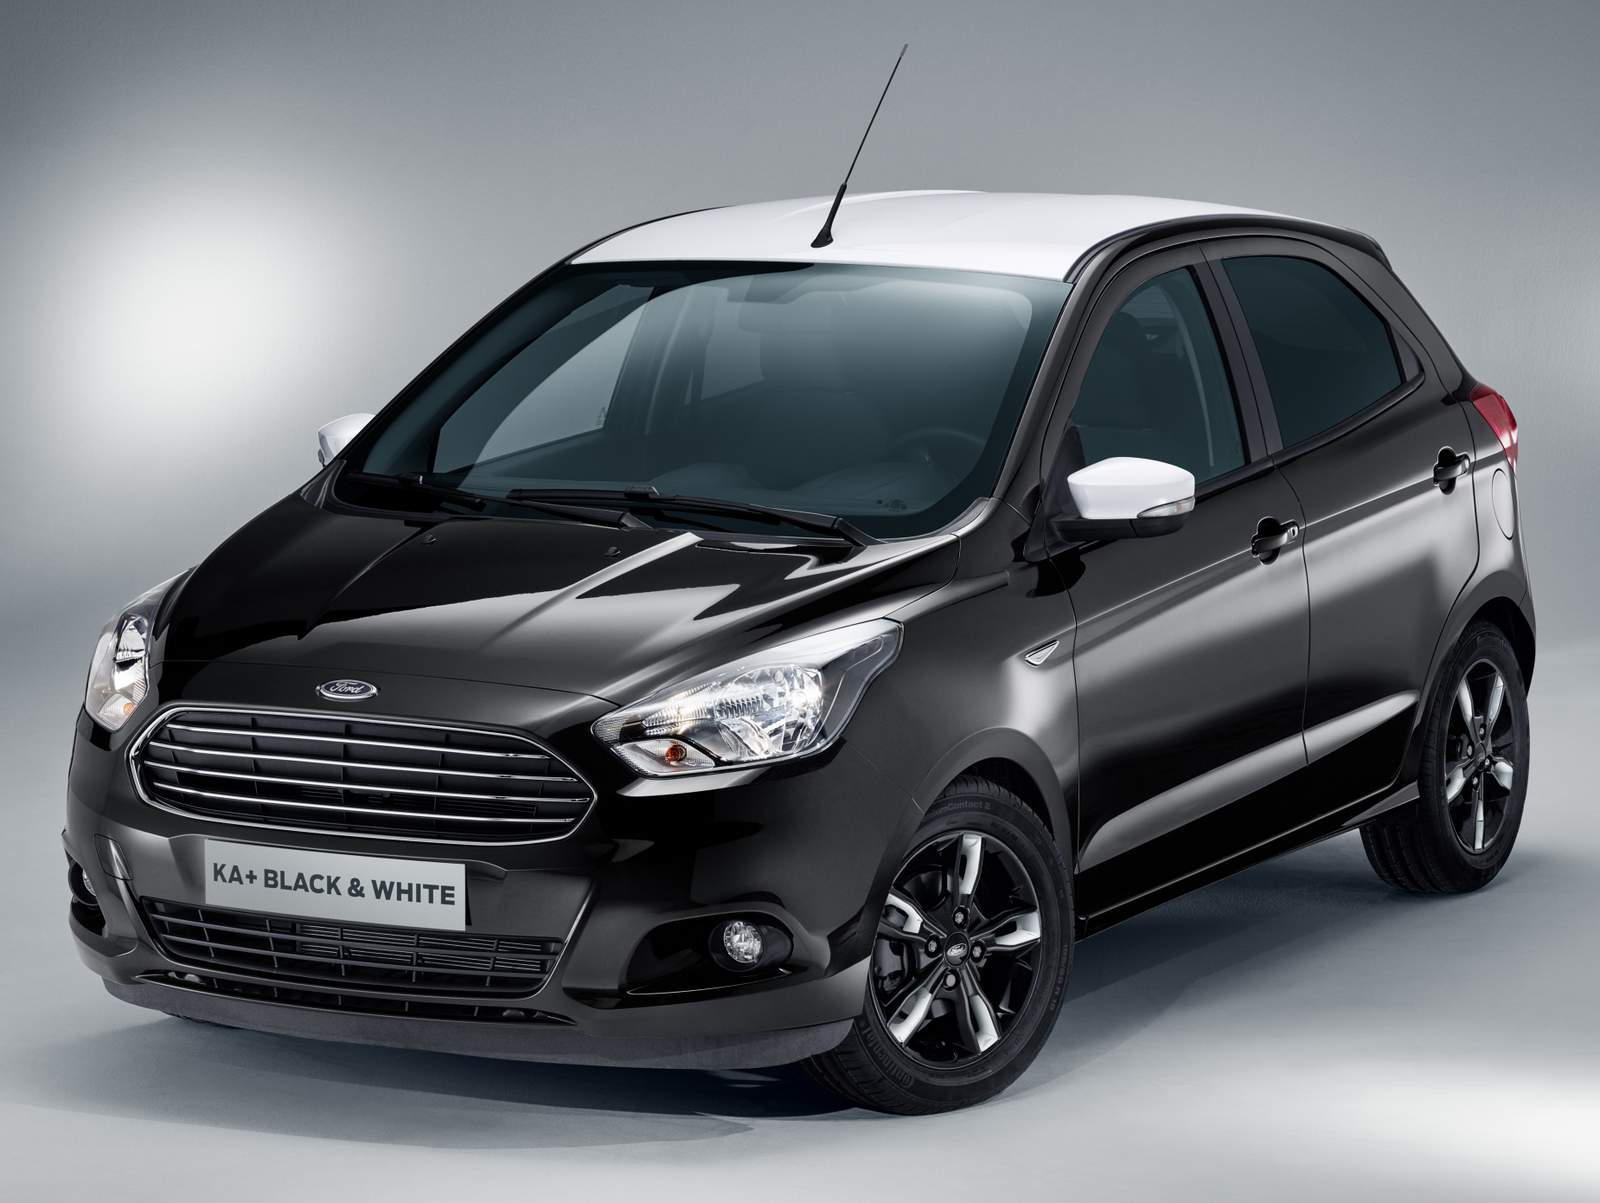 ford ka s rie especial marca in cio de vendas inglaterra car blog br. Black Bedroom Furniture Sets. Home Design Ideas